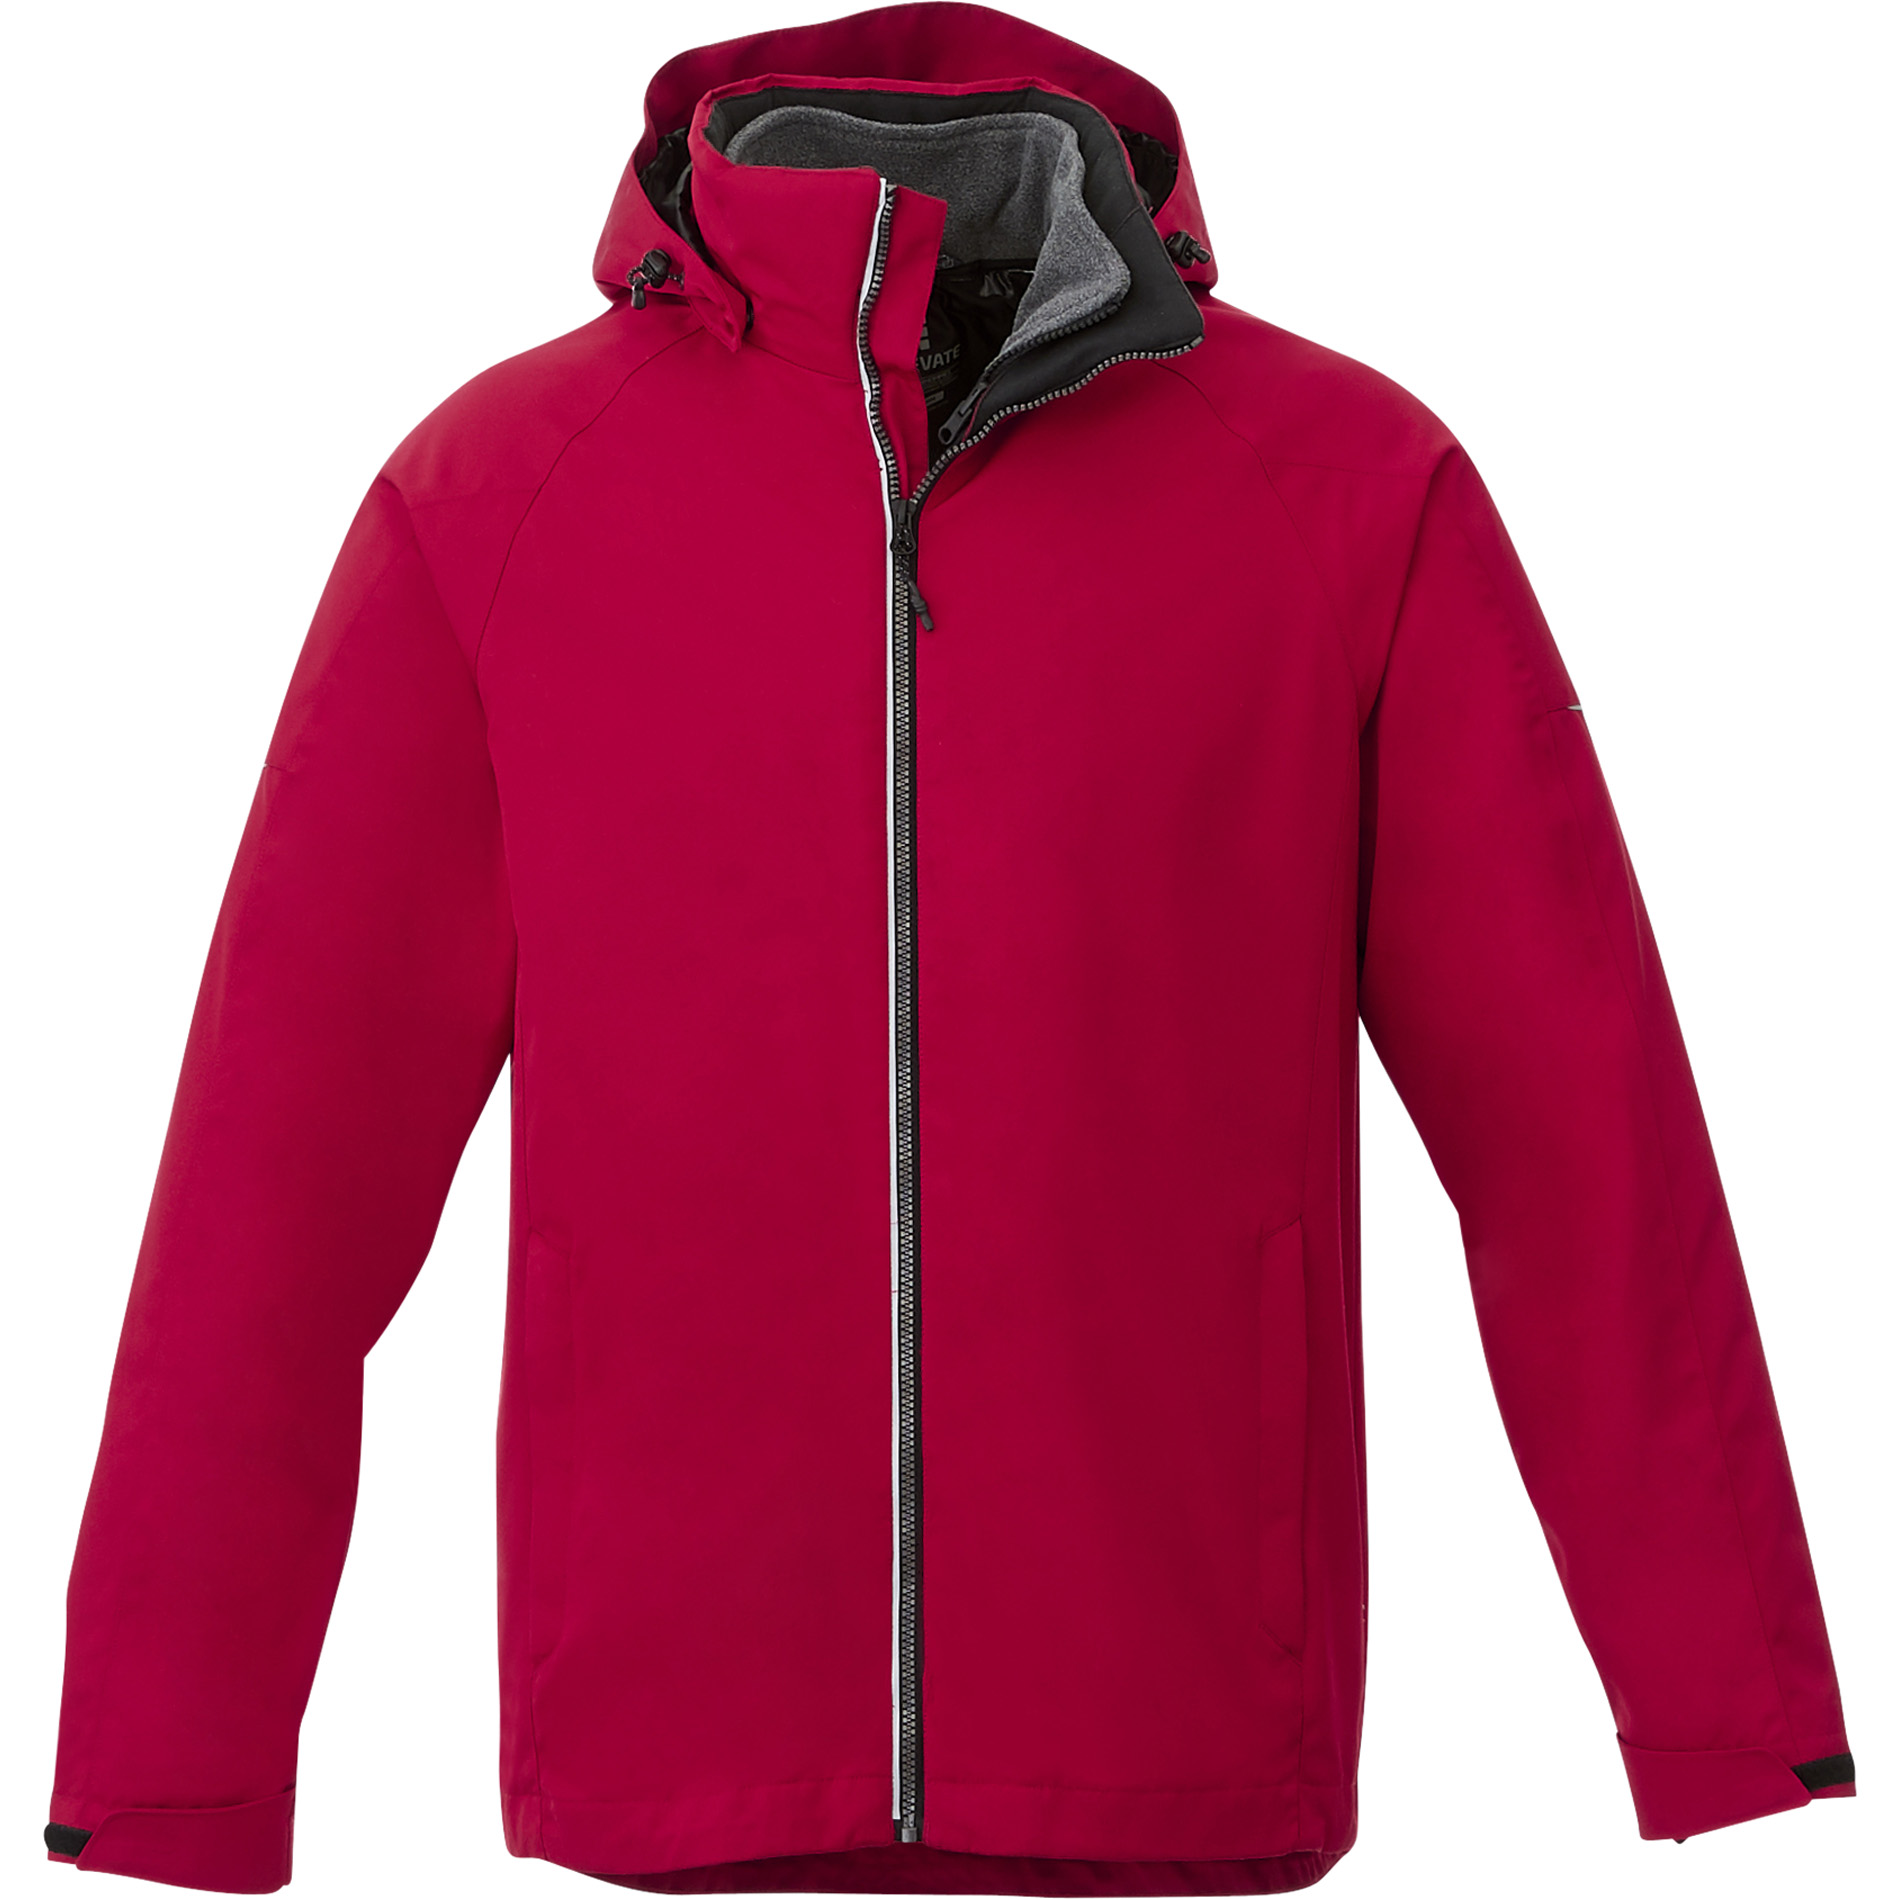 Elevate TM19307 - Men's Arlington 3-in-1 Jacket